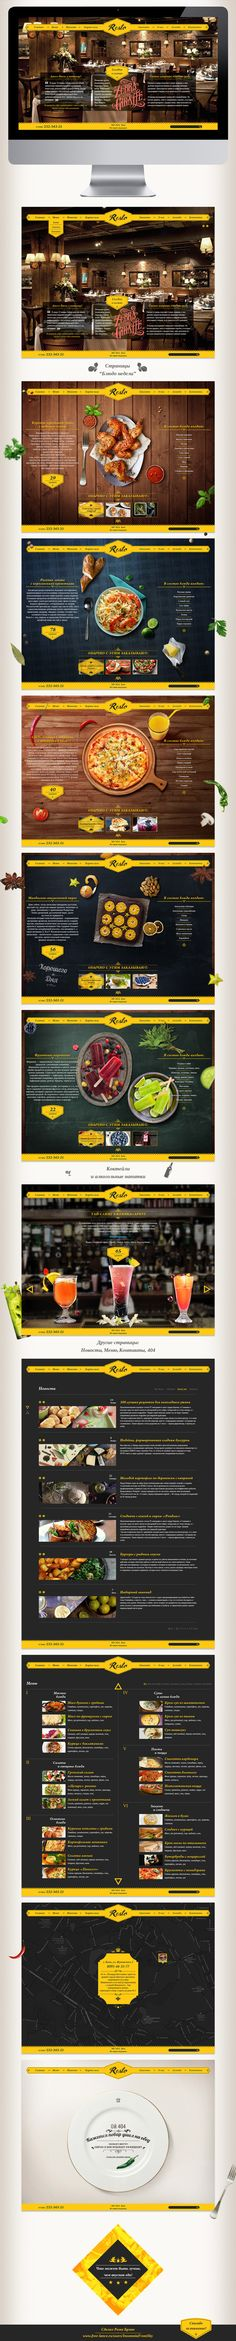 #restaurant ... Prosto Resto by Roma Brann, via Behance